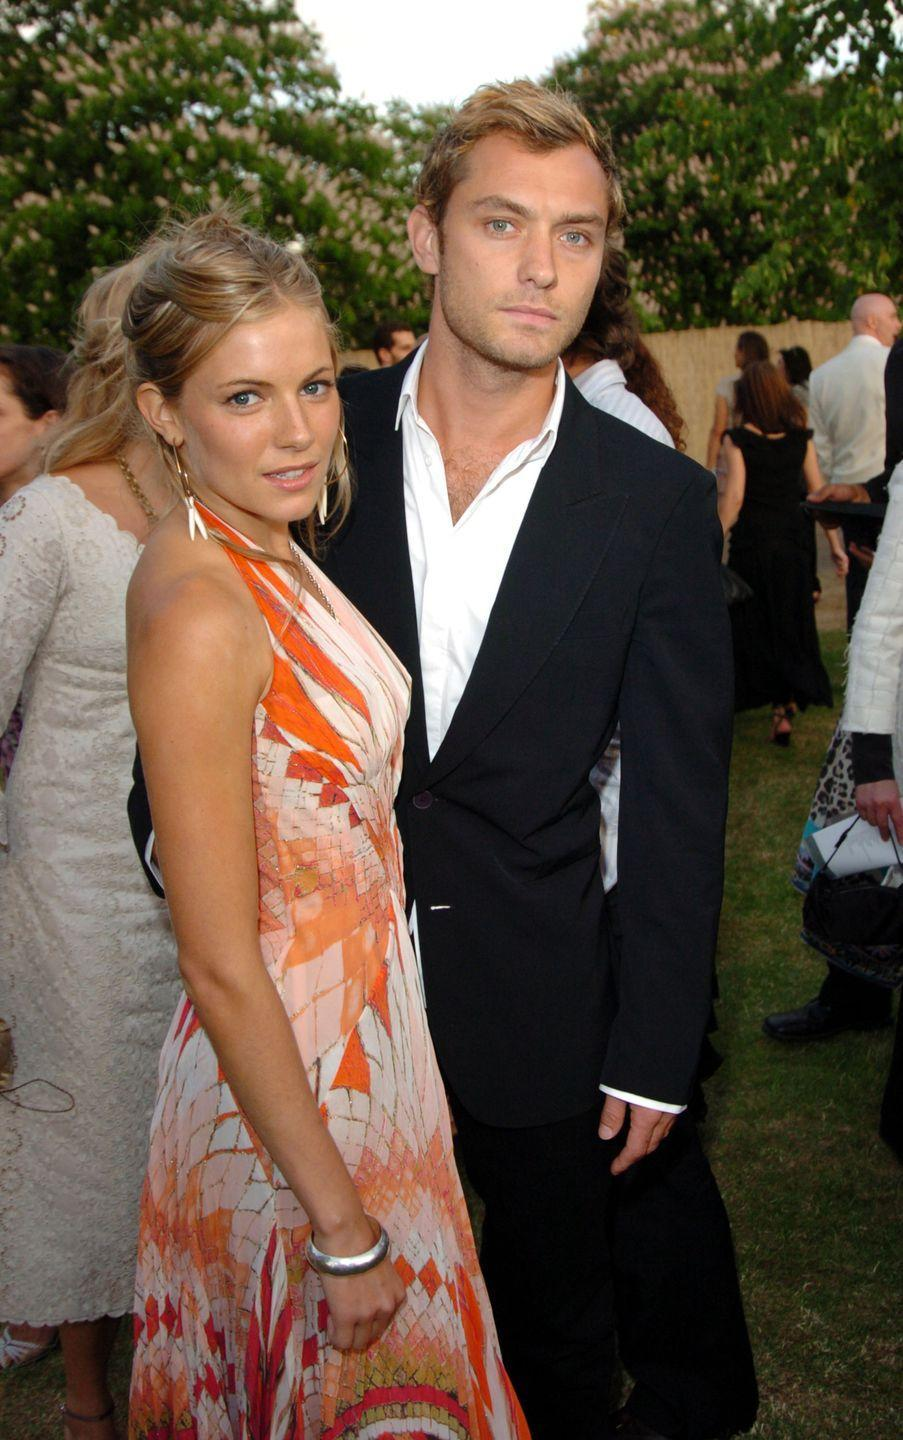 """<p>According to<em> <a href=""""https://www.usmagazine.com/celebrity-news/news/sienna-miller-love-you-voicemail-message-daniel-craig-jude-law-2014281/"""" rel=""""nofollow noopener"""" target=""""_blank"""" data-ylk=""""slk:Us Weekly"""" class=""""link rapid-noclick-resp"""">Us Weekly</a></em>, Sienna was also two-timing her fiancé in 2005—and she was doing it with his former co-star and friend, Daniel Craig. It was revealed when a voicemail, in which Sienna told Daniel she loved him, was made public. But Jude stood by her, at least, until they ultimately split in 2011 and married other people.</p>"""